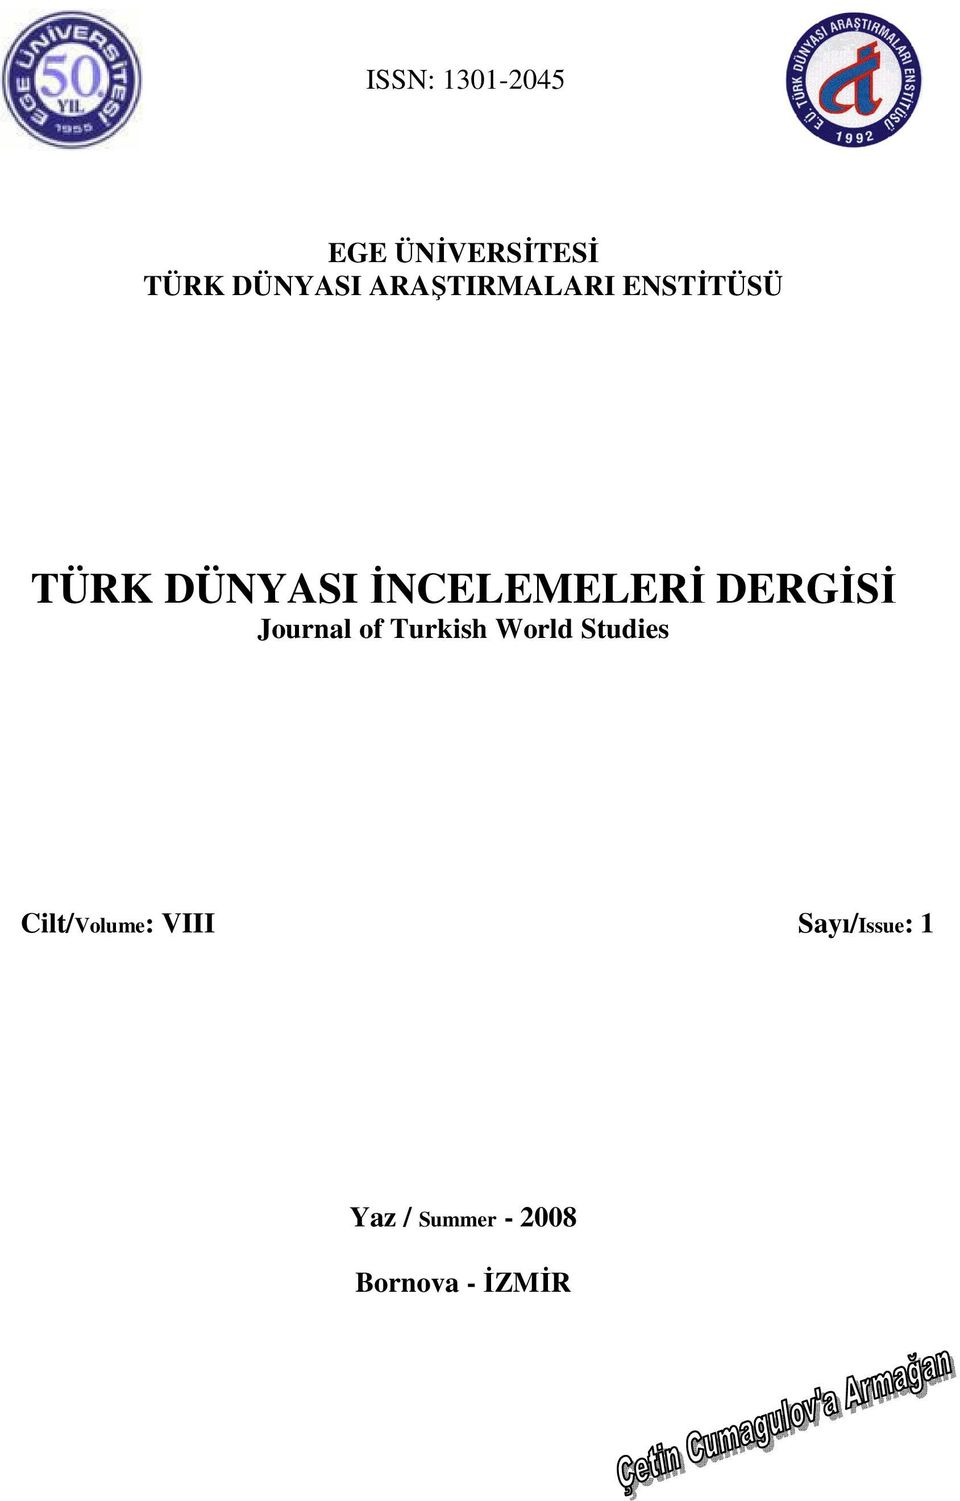 DERGİSİ Journal of Turkish World Studies